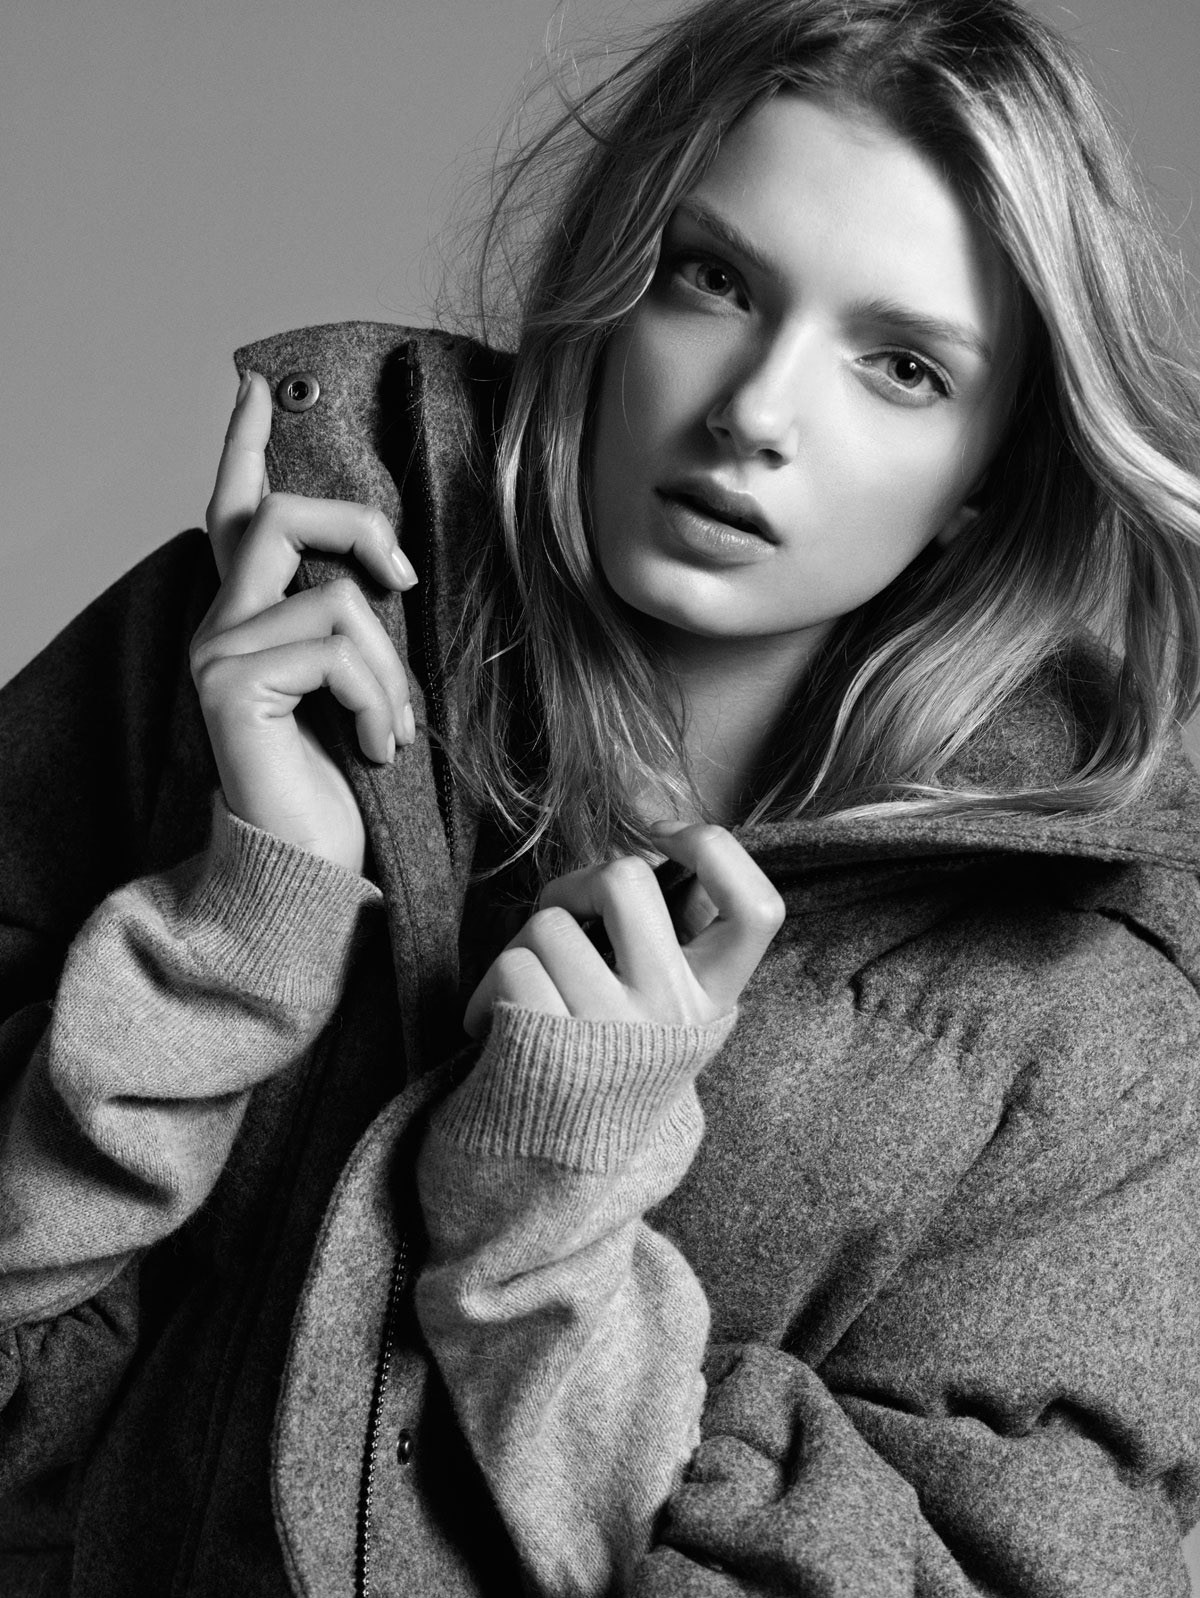 Stylish Lily Donaldson for mobiles